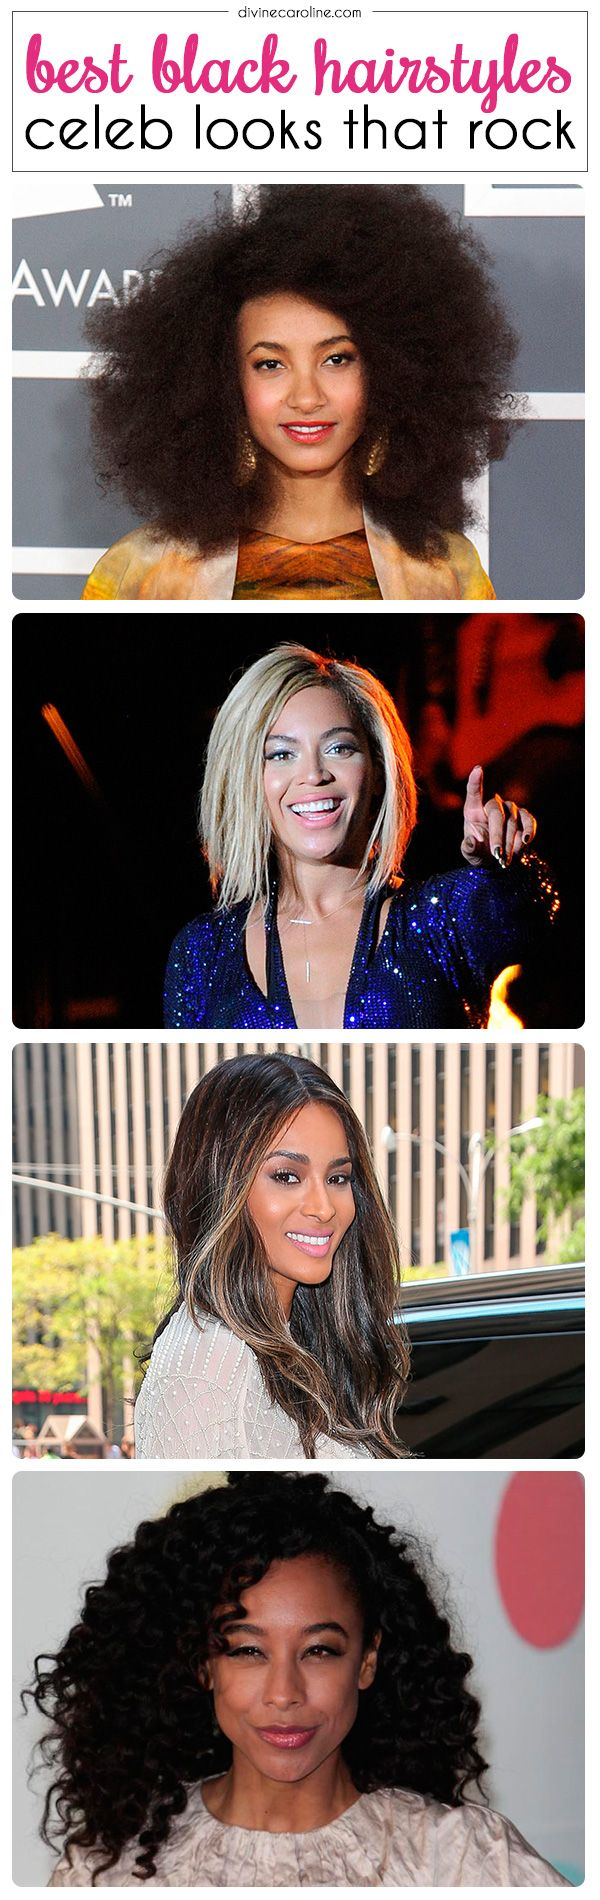 These stunning women rock signature styles you can use to inspire your own statement look! #hair #ethnic #hairstyle